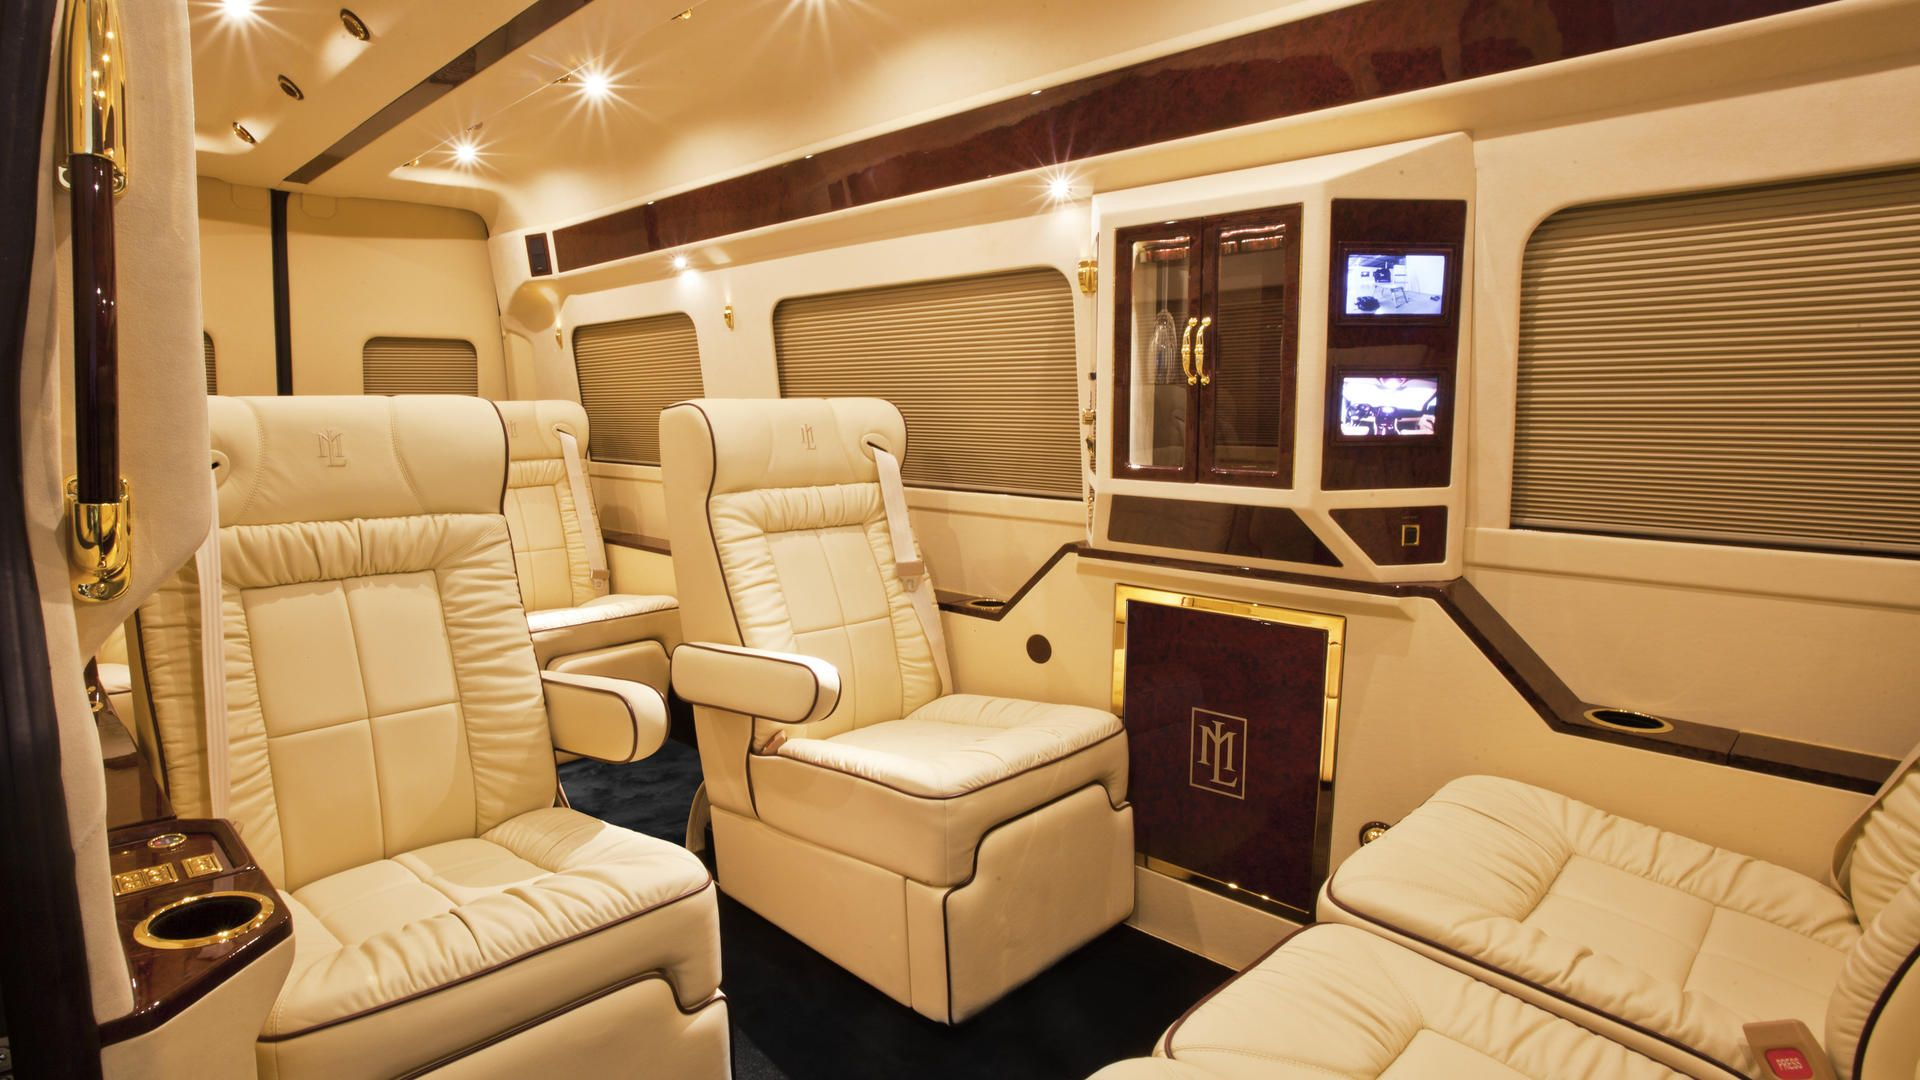 custom luxury suv pictures | Luxury Conversion Vans ...